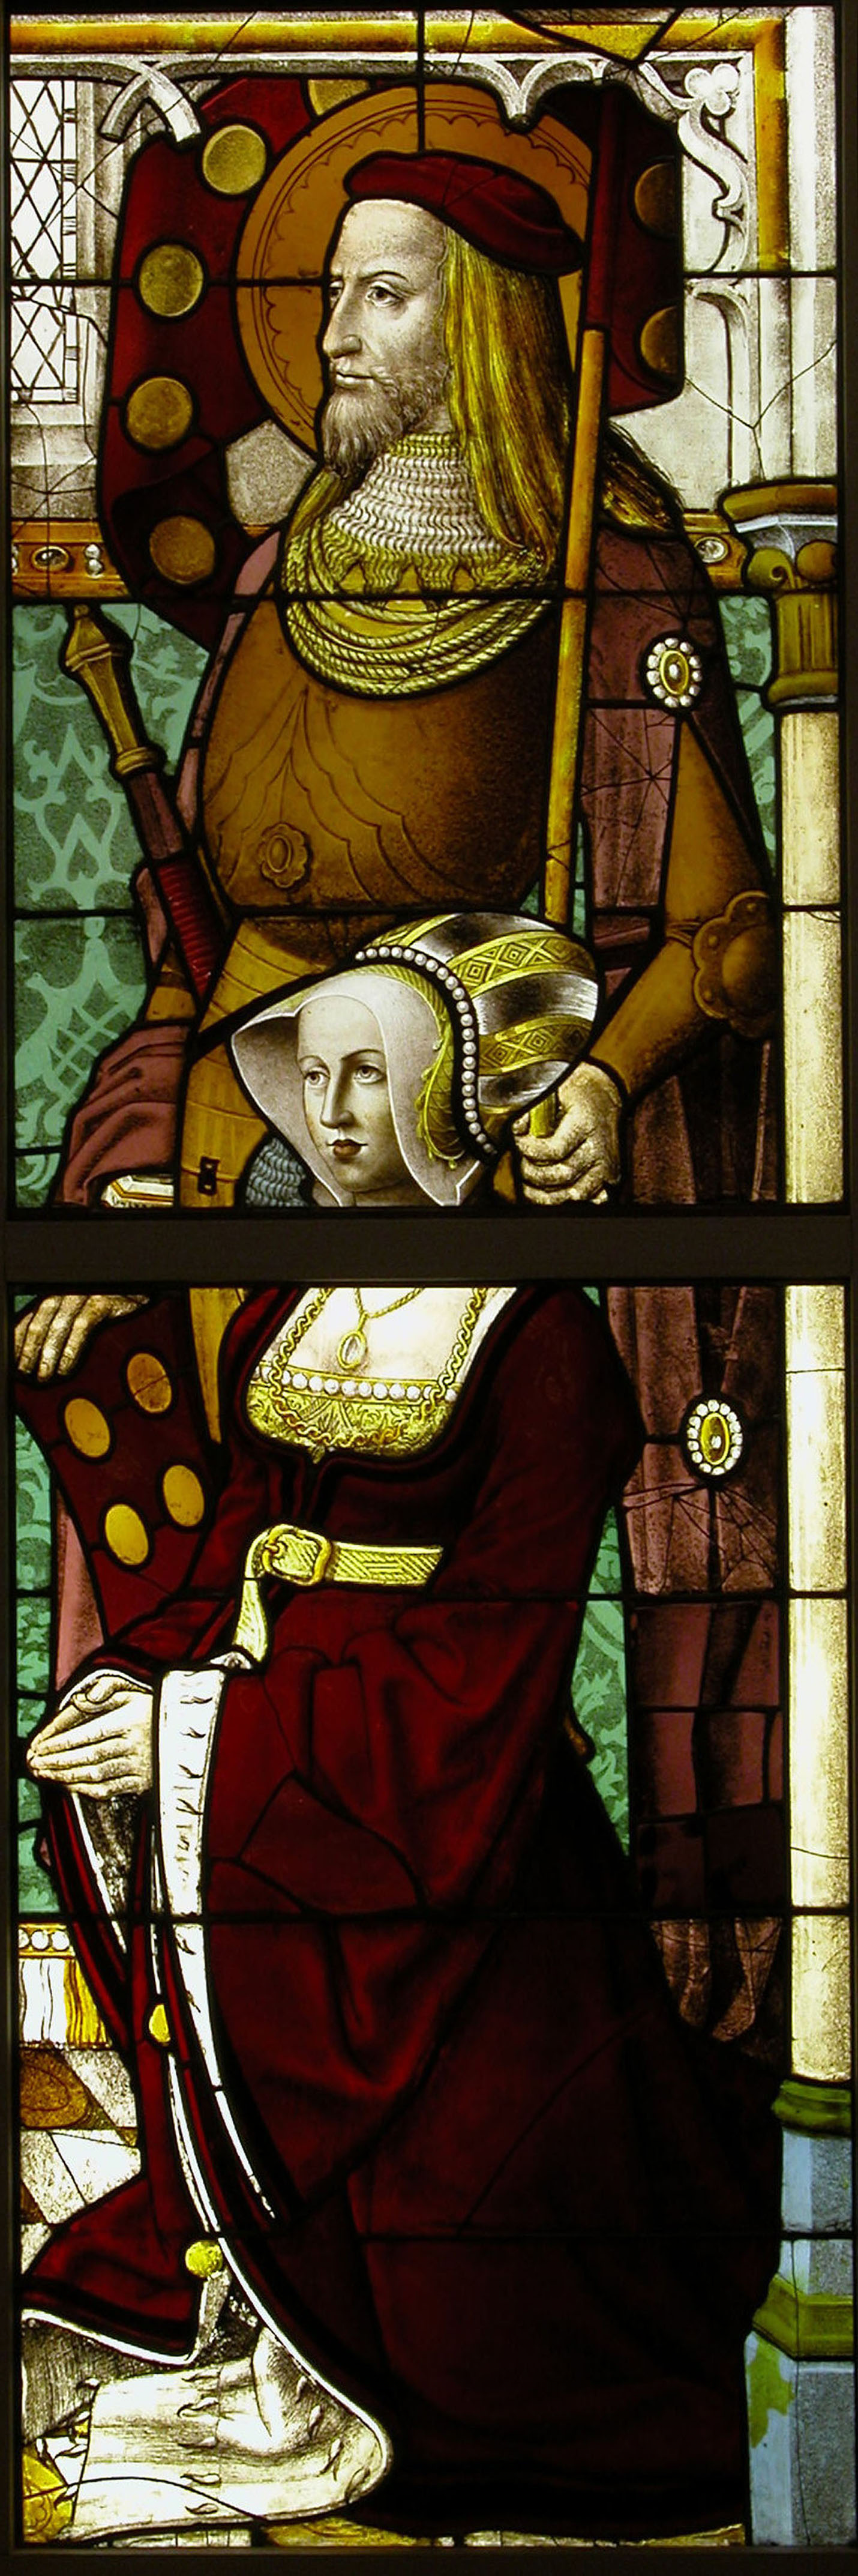 A stained-glass window depicting a man with yellow hair and a pointed beard, wearing a red cap, and holding a staff looking off to the left; a woman in a long red dress is kneeling in front of him, also looking off to the left, with her hands clasped in front of her as if in devotion